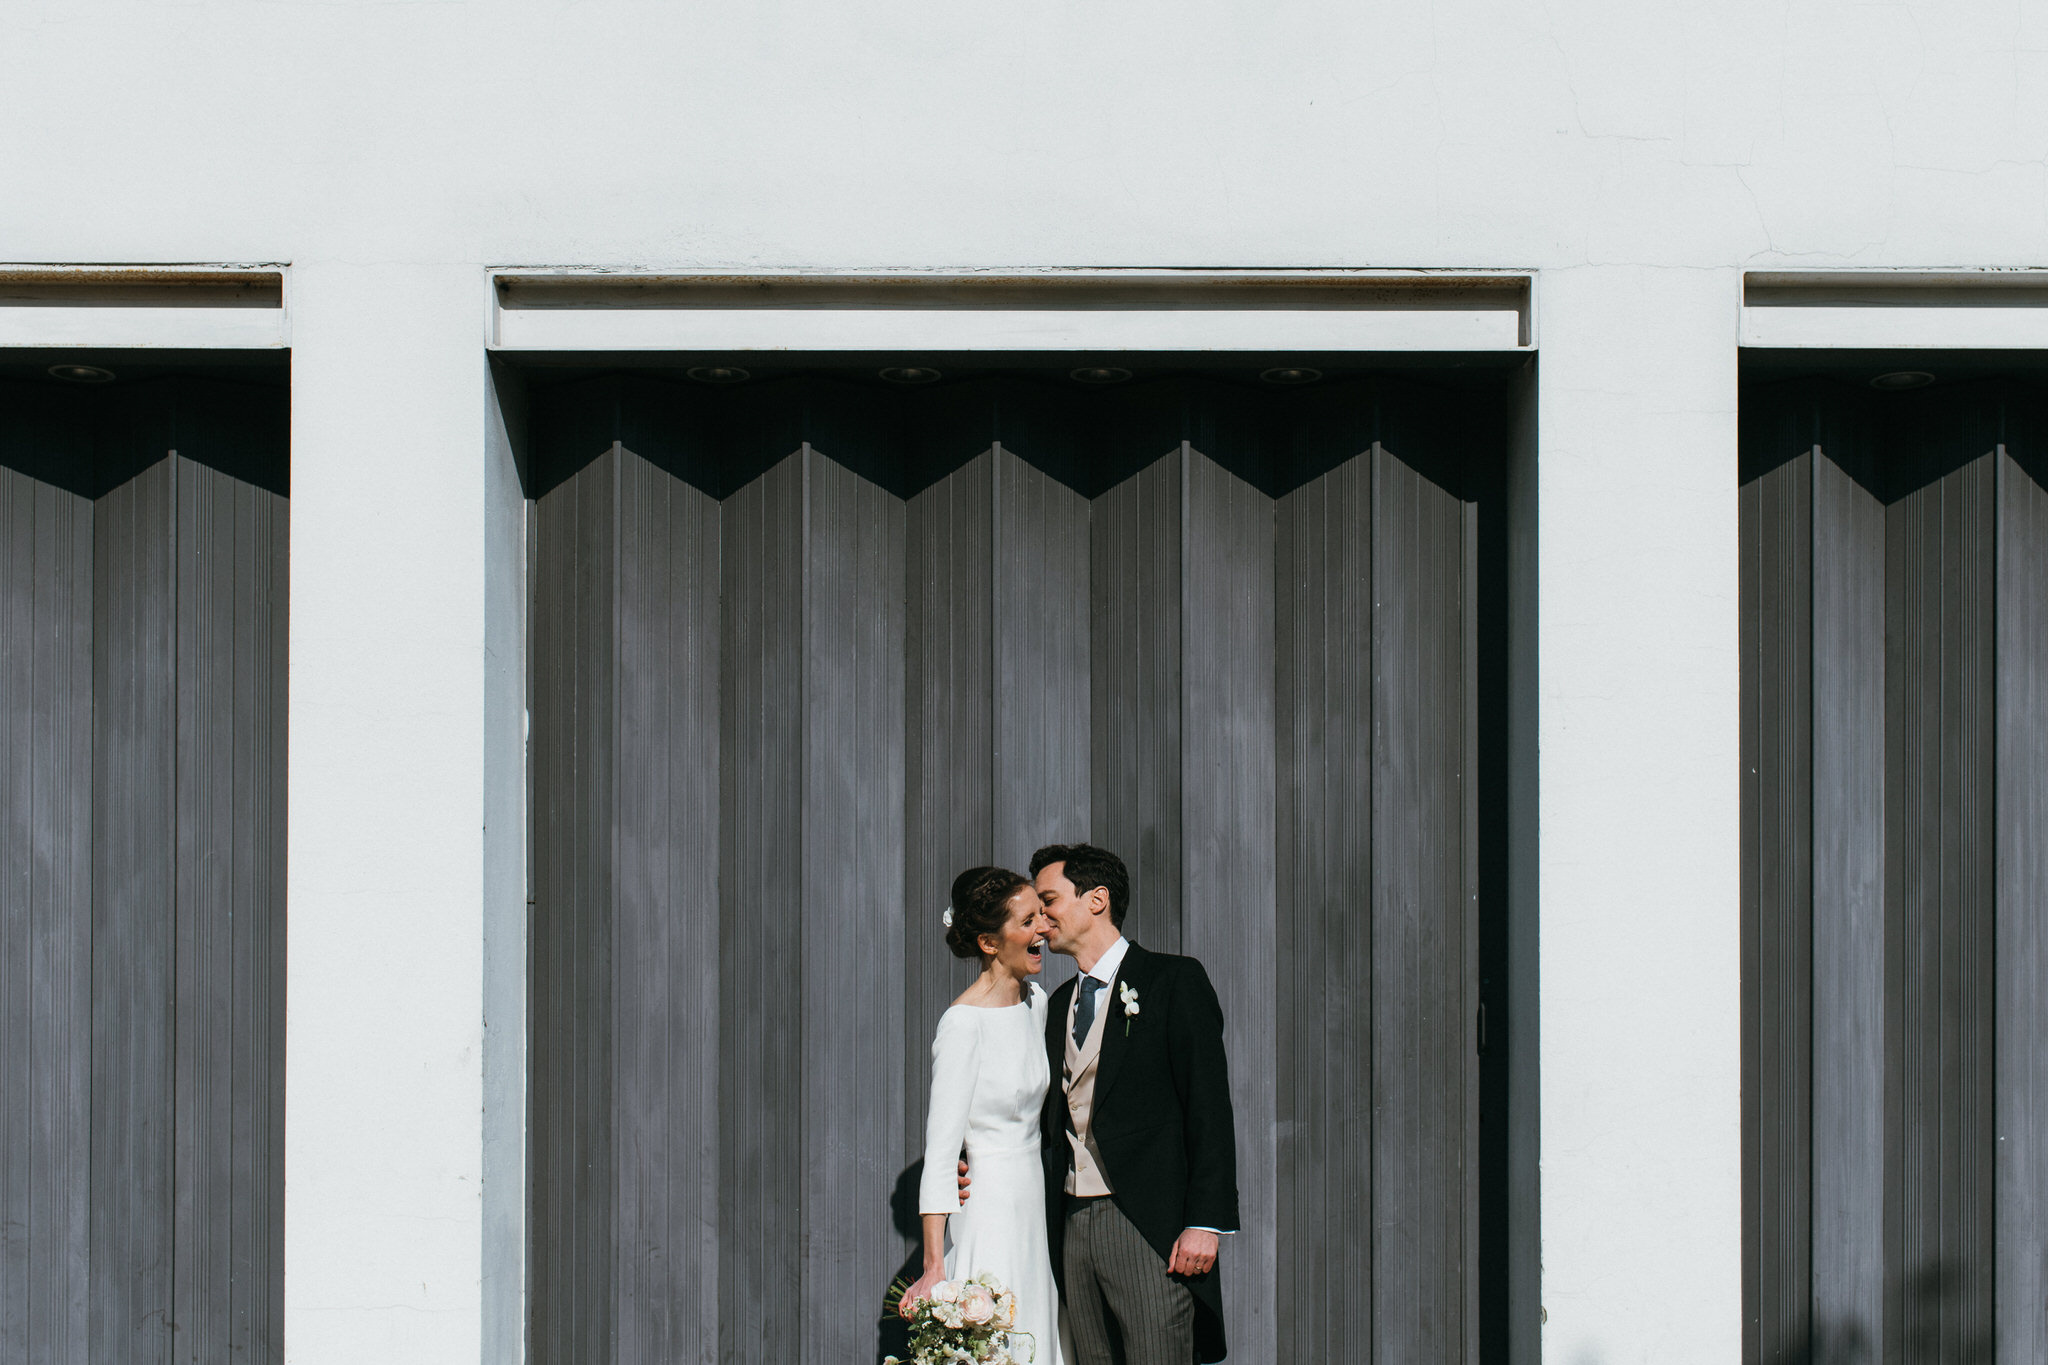 Sunbeam studios wedding photography